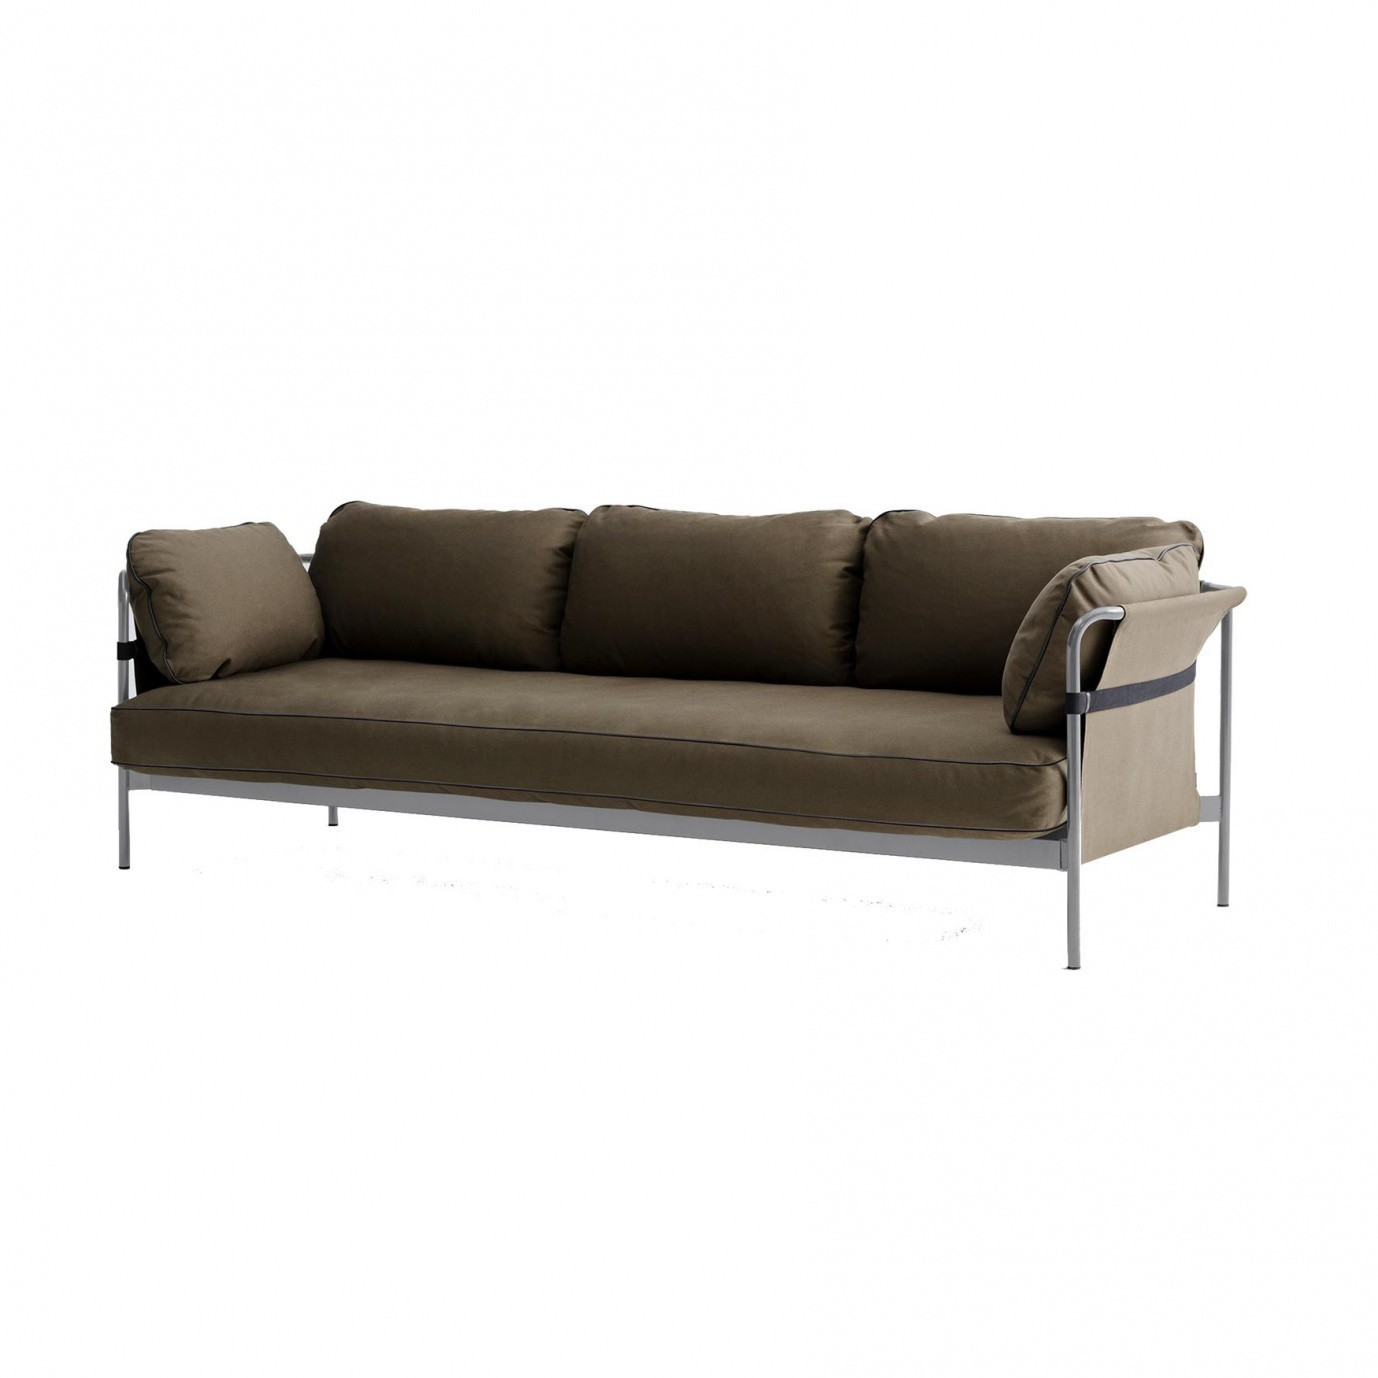 HAY   Can 3 Seater Sofa   Grey Brown/fabric Canvas Army/247x82x89